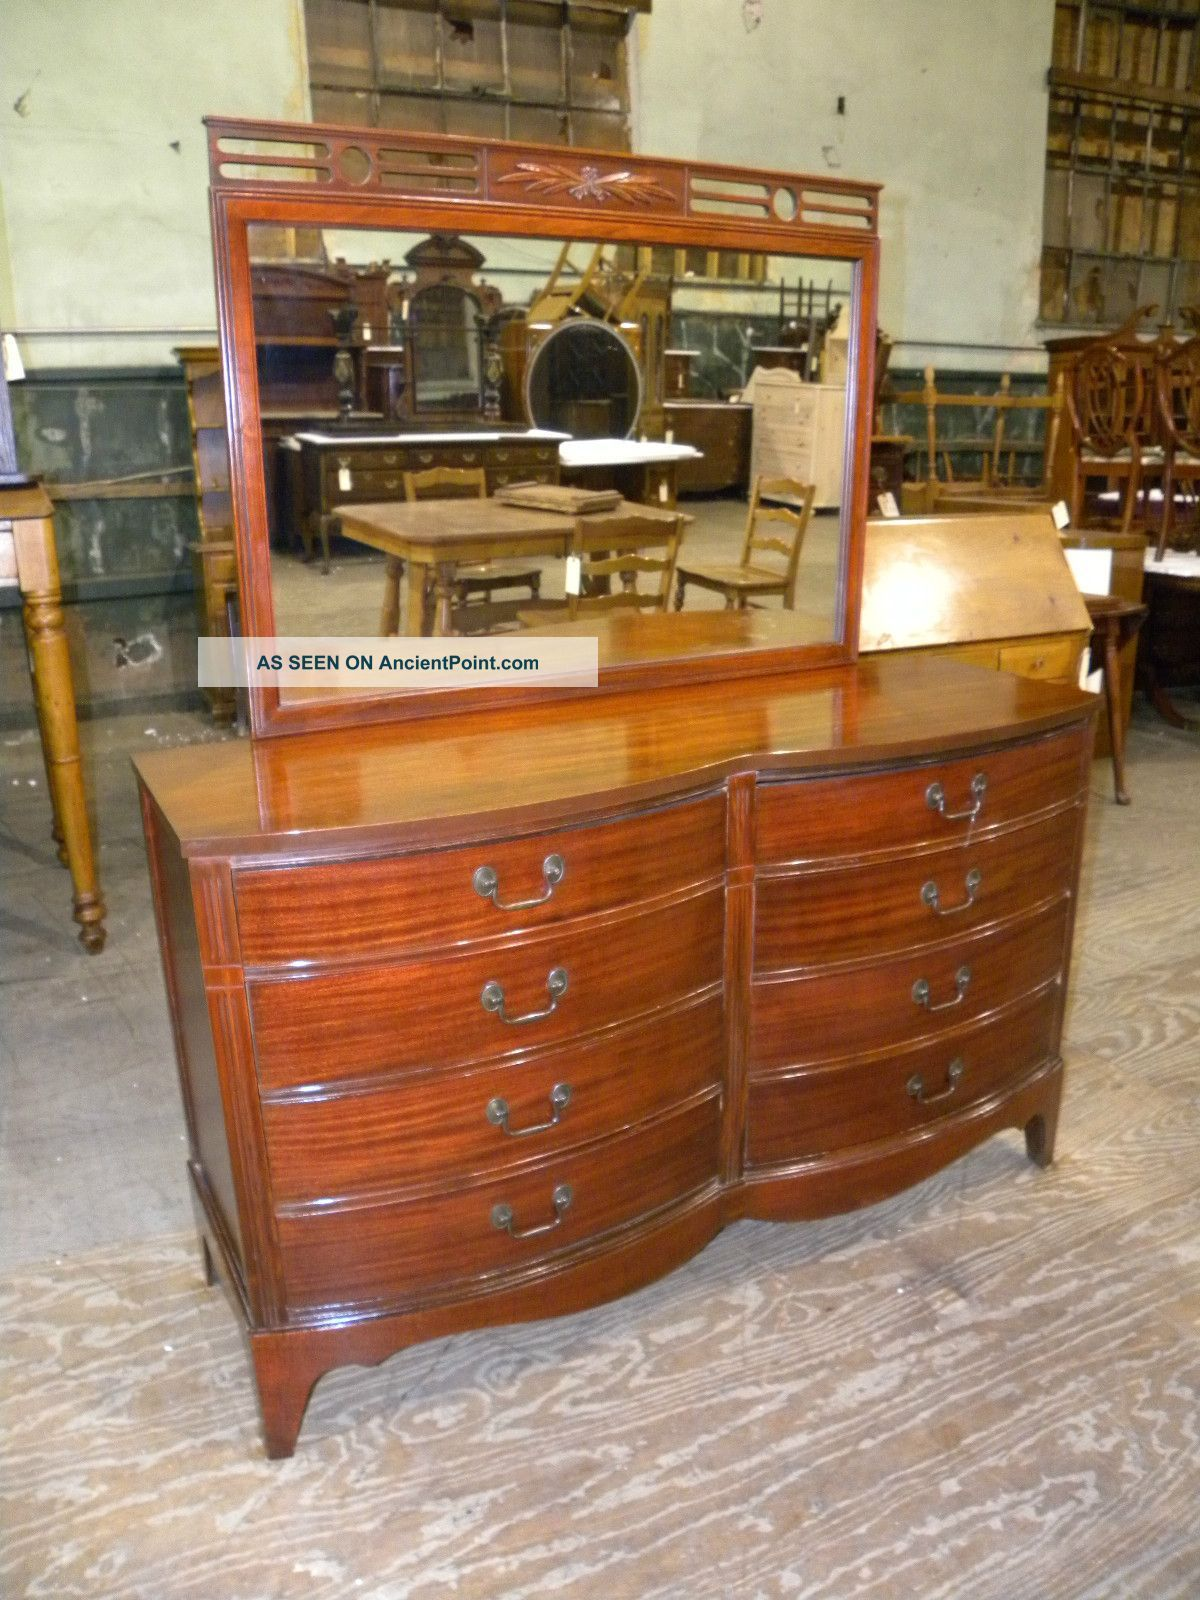 Marvelous Antique Double Bow Front Dixie Bedroom Furniture Mahogany Dresser With  Mirror 1900 1950 Photo